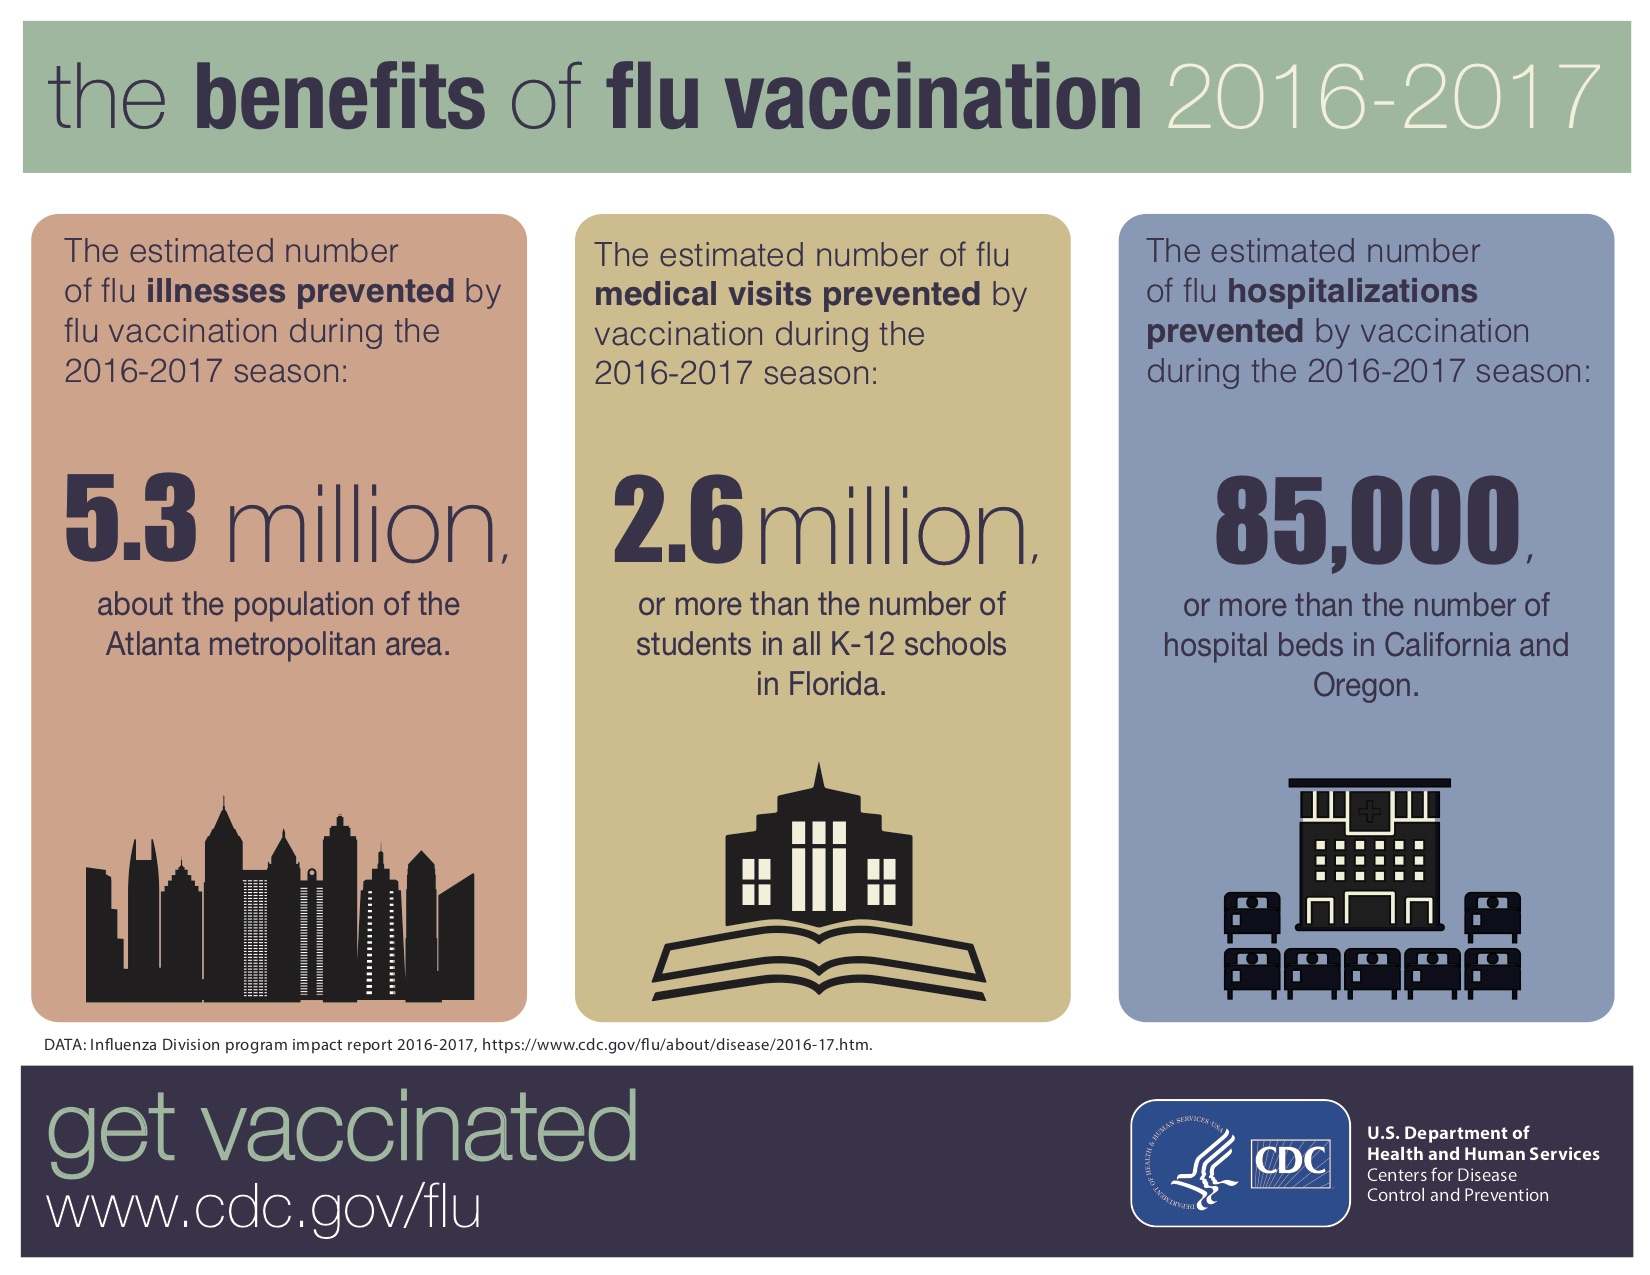 Misconceptions about Flu Vaccine Effectiveness